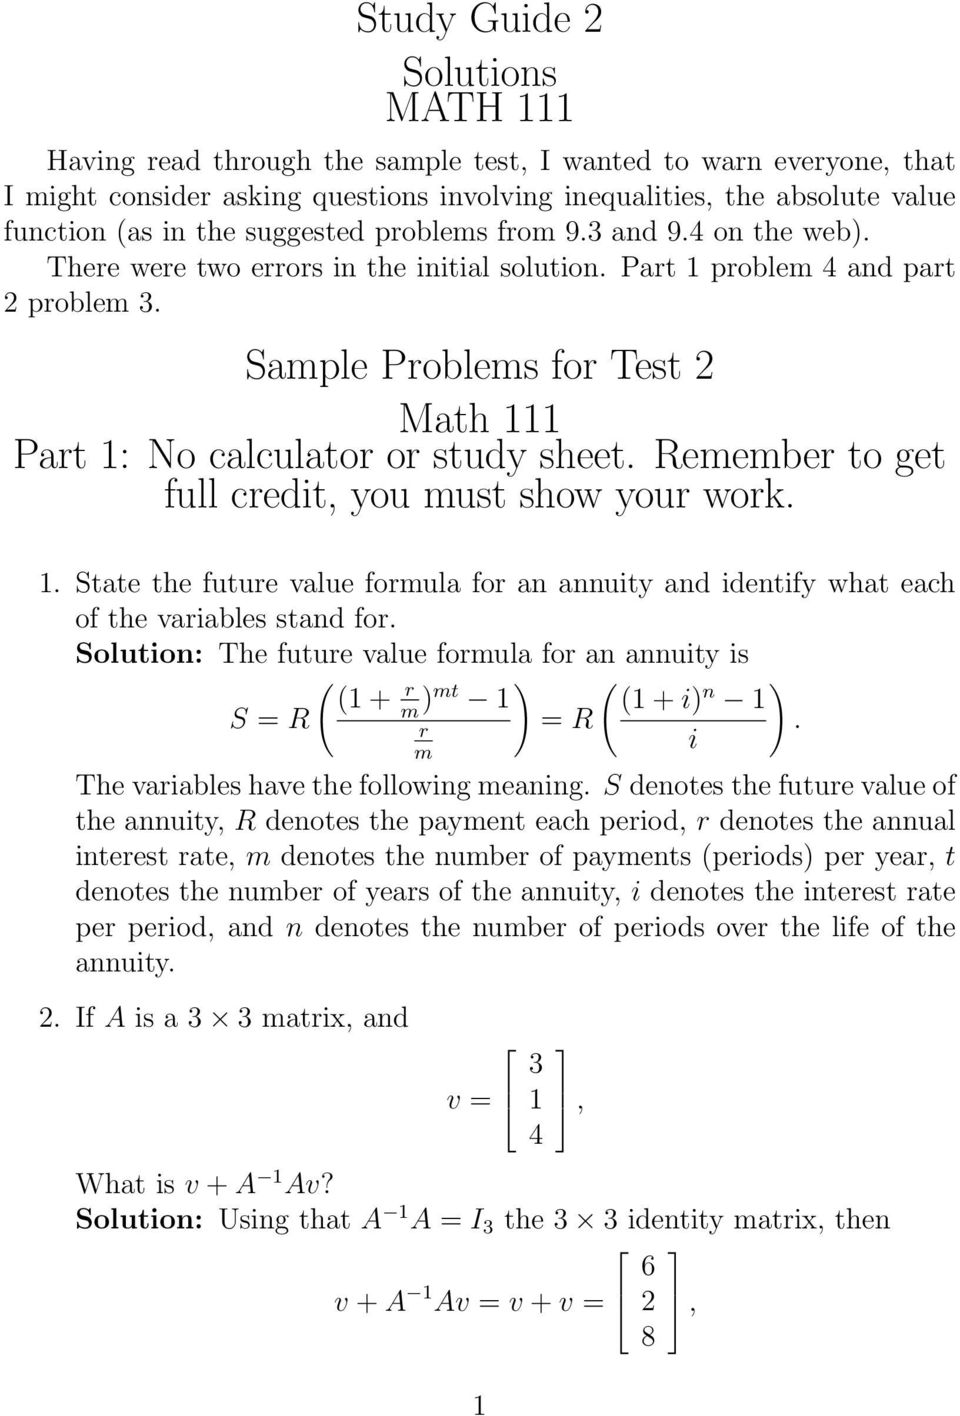 Sample Problems for Test 2 Math 111 Part 1: No calculator or study sheet. Remember to get full credit, you must show your work. 1. State the future value formula for an annuity and identify what each of the variables stand for.